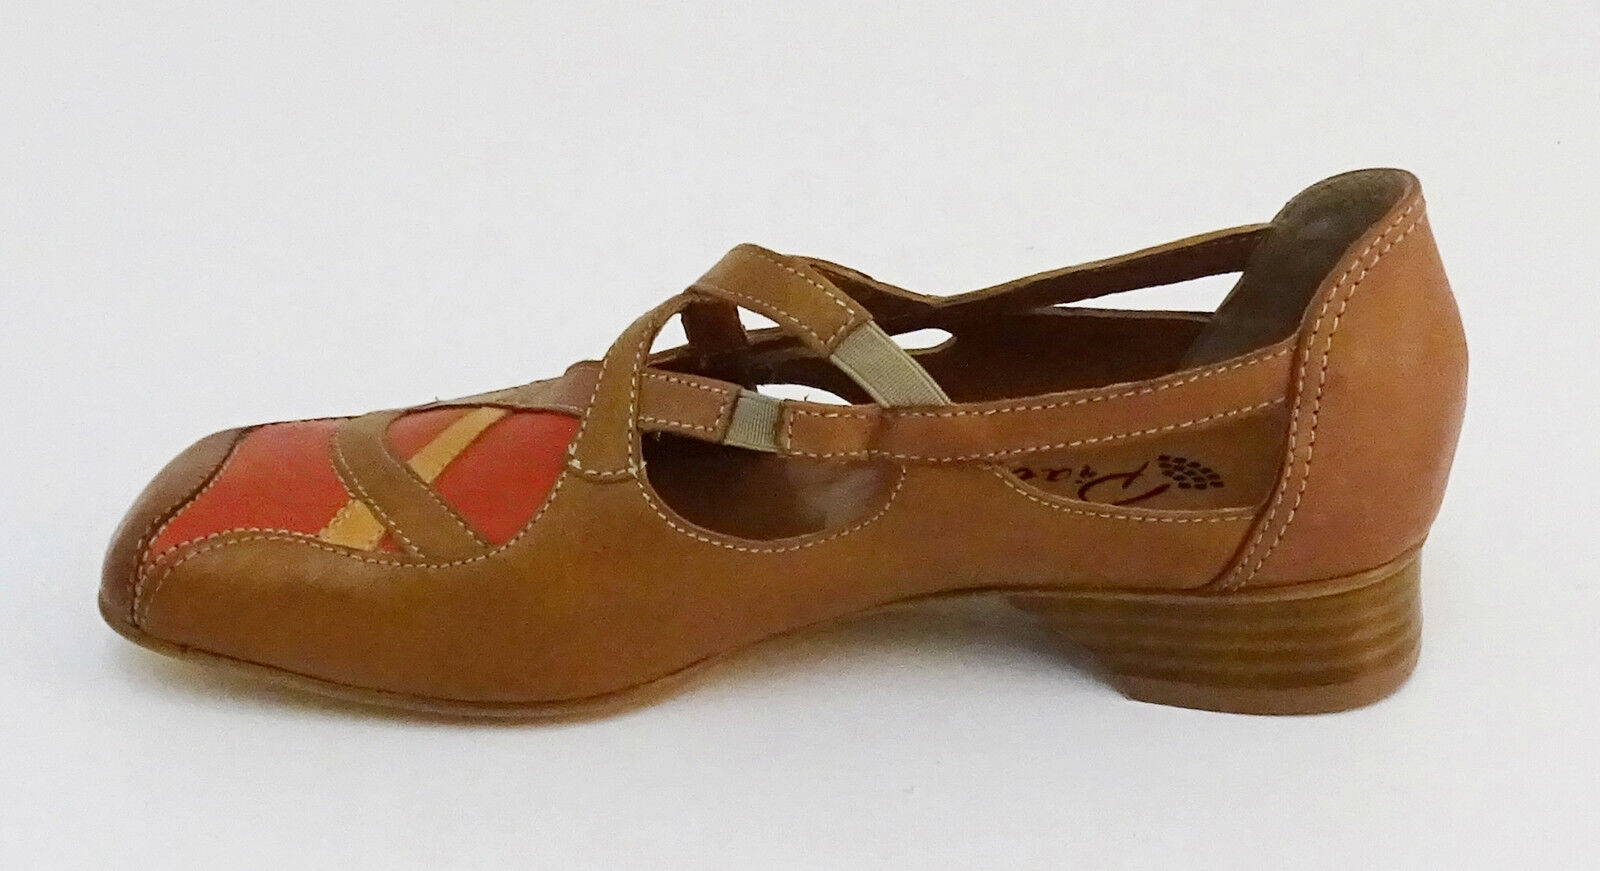 Slipper Piazza Pumps 38 Echtleder braun, orange Gr. 38 Pumps e06e9b